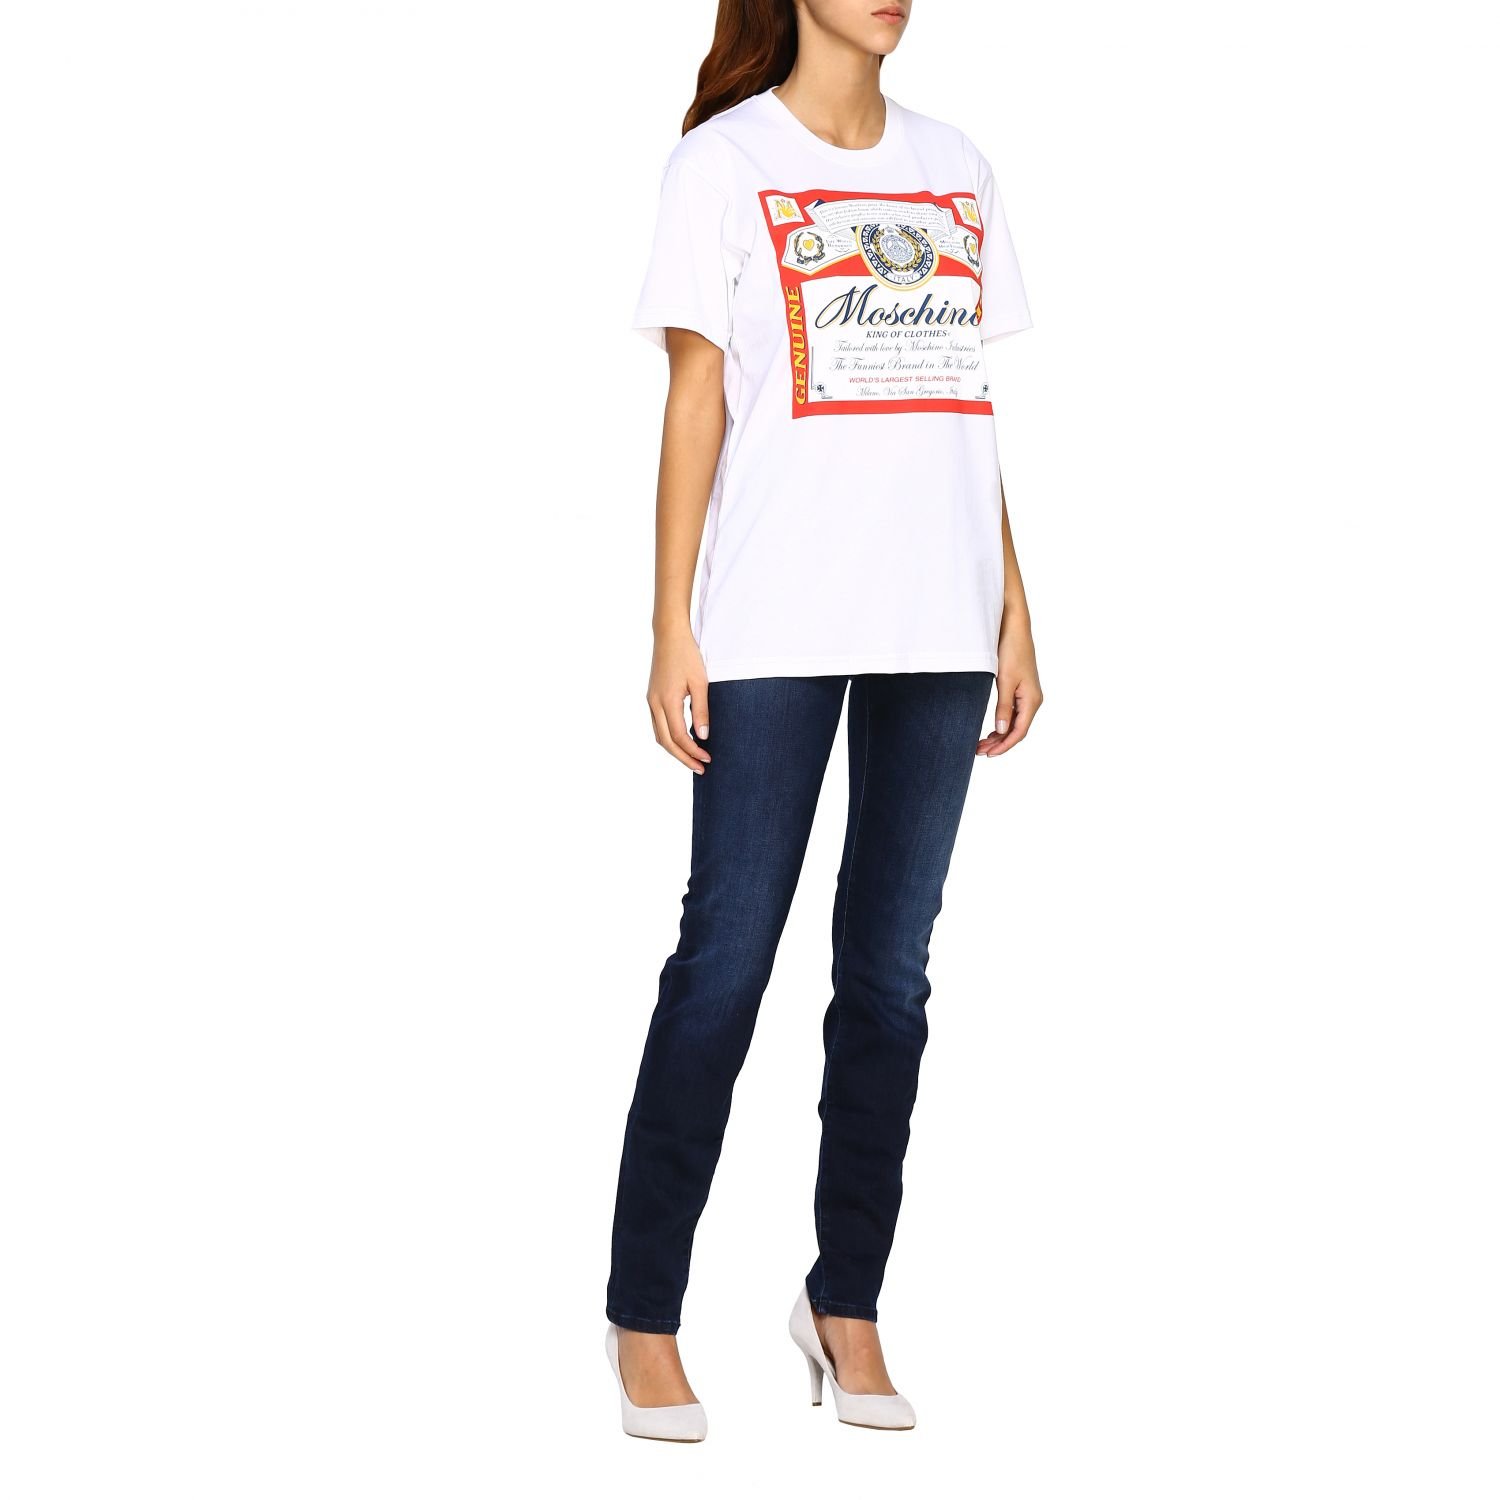 T-shirt Capsule Collection Moschino X Budweiser in jersey di cotone bianco 2